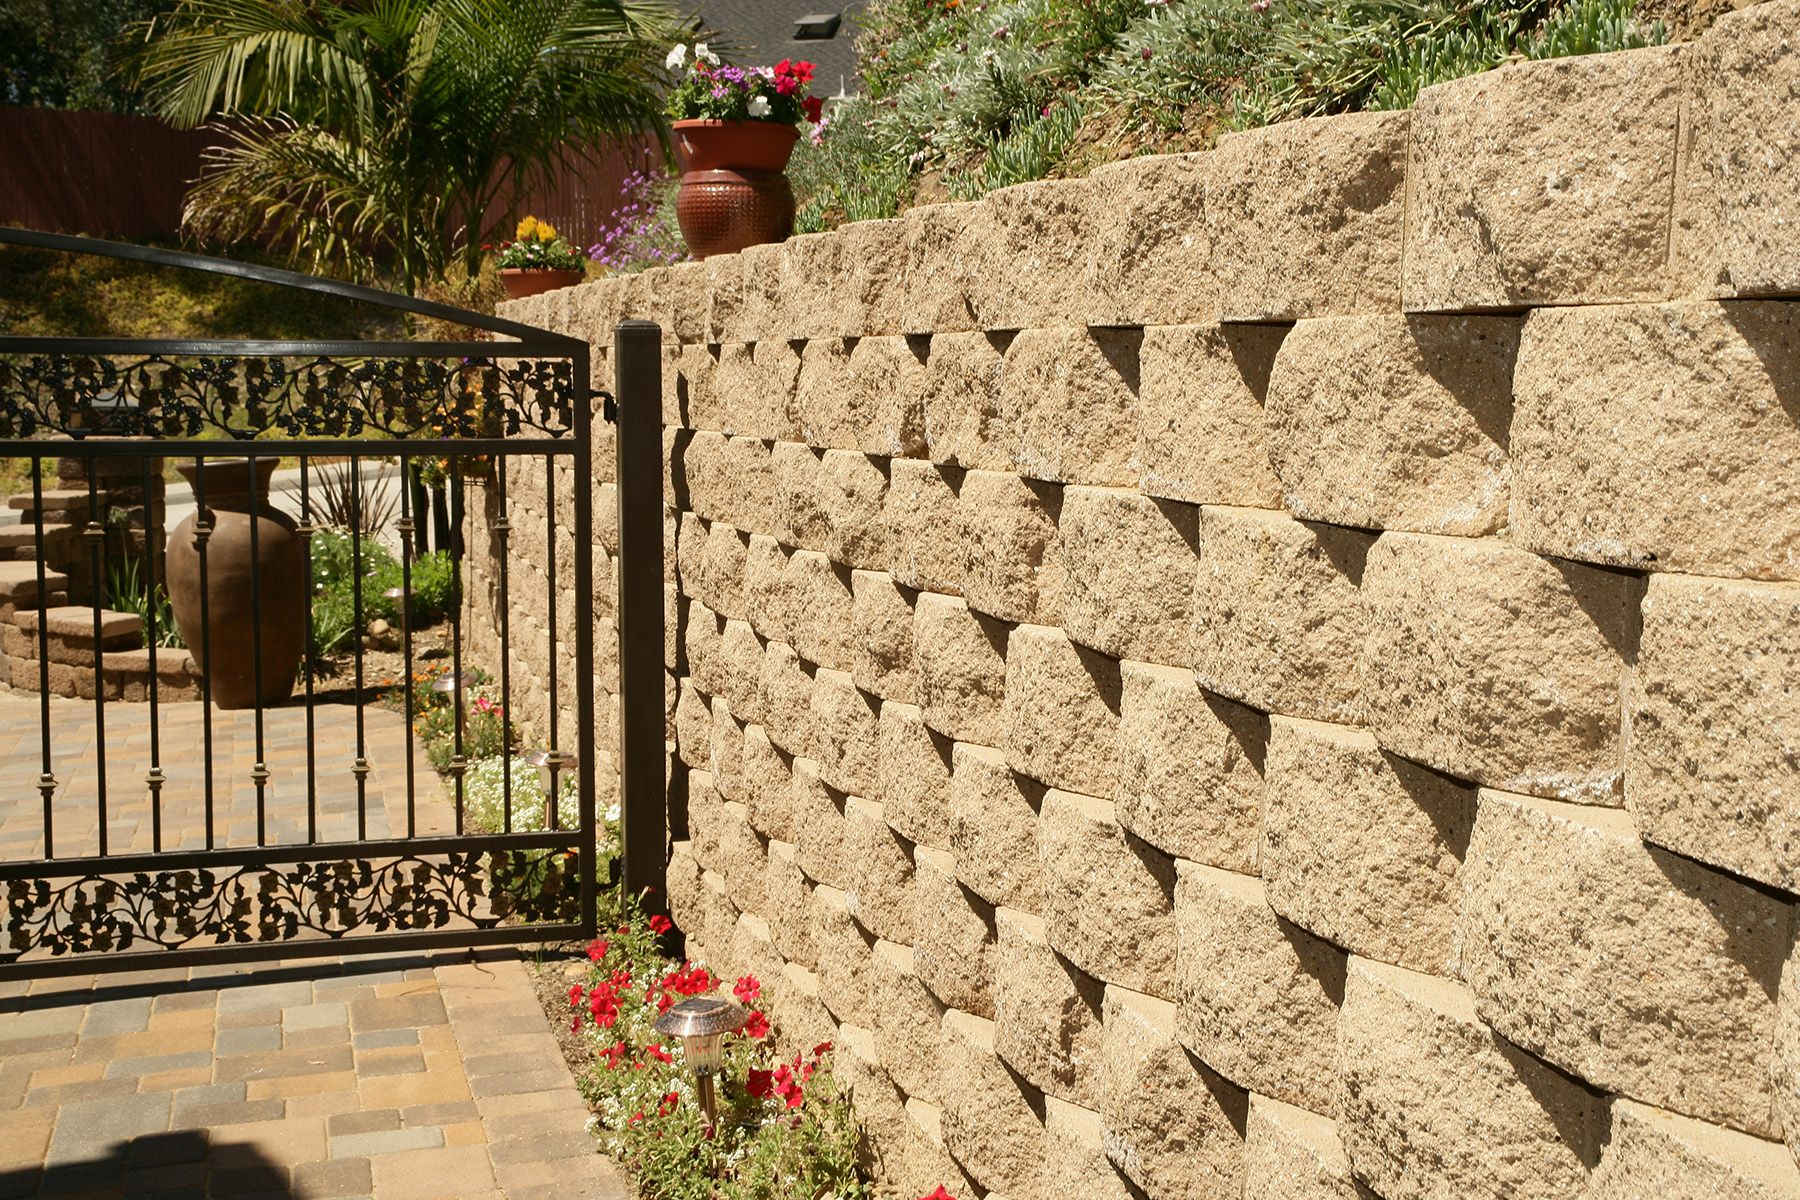 Country Manor, Brownstone Retaining Wall | LANDSCAPE WALLS ...